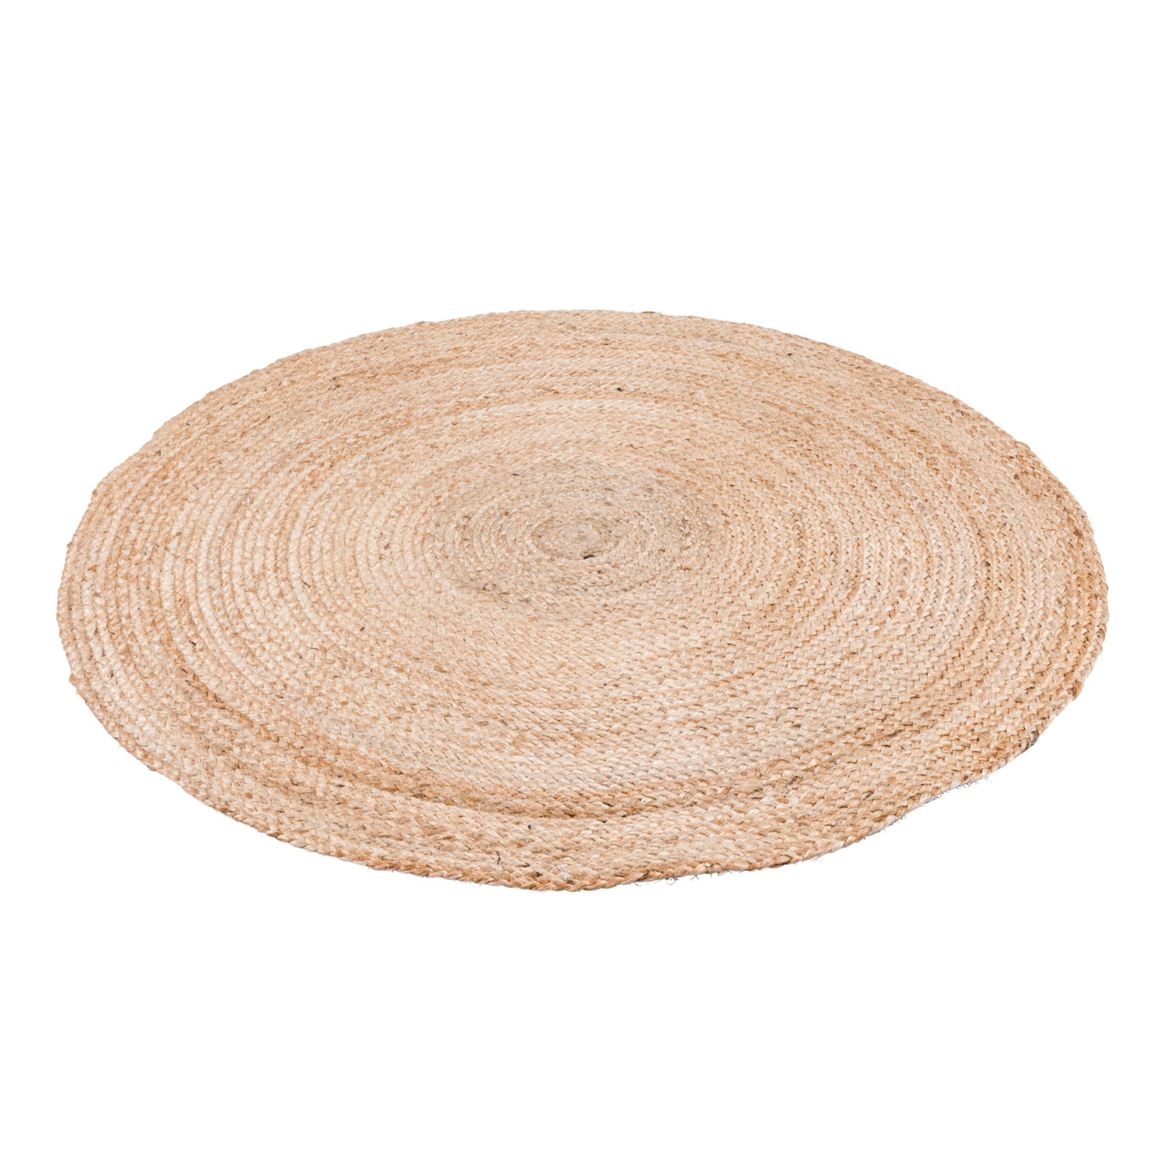 BRAID Tapis naturel Ø 120 cm_braid-tapis-naturel-ø-120-cm